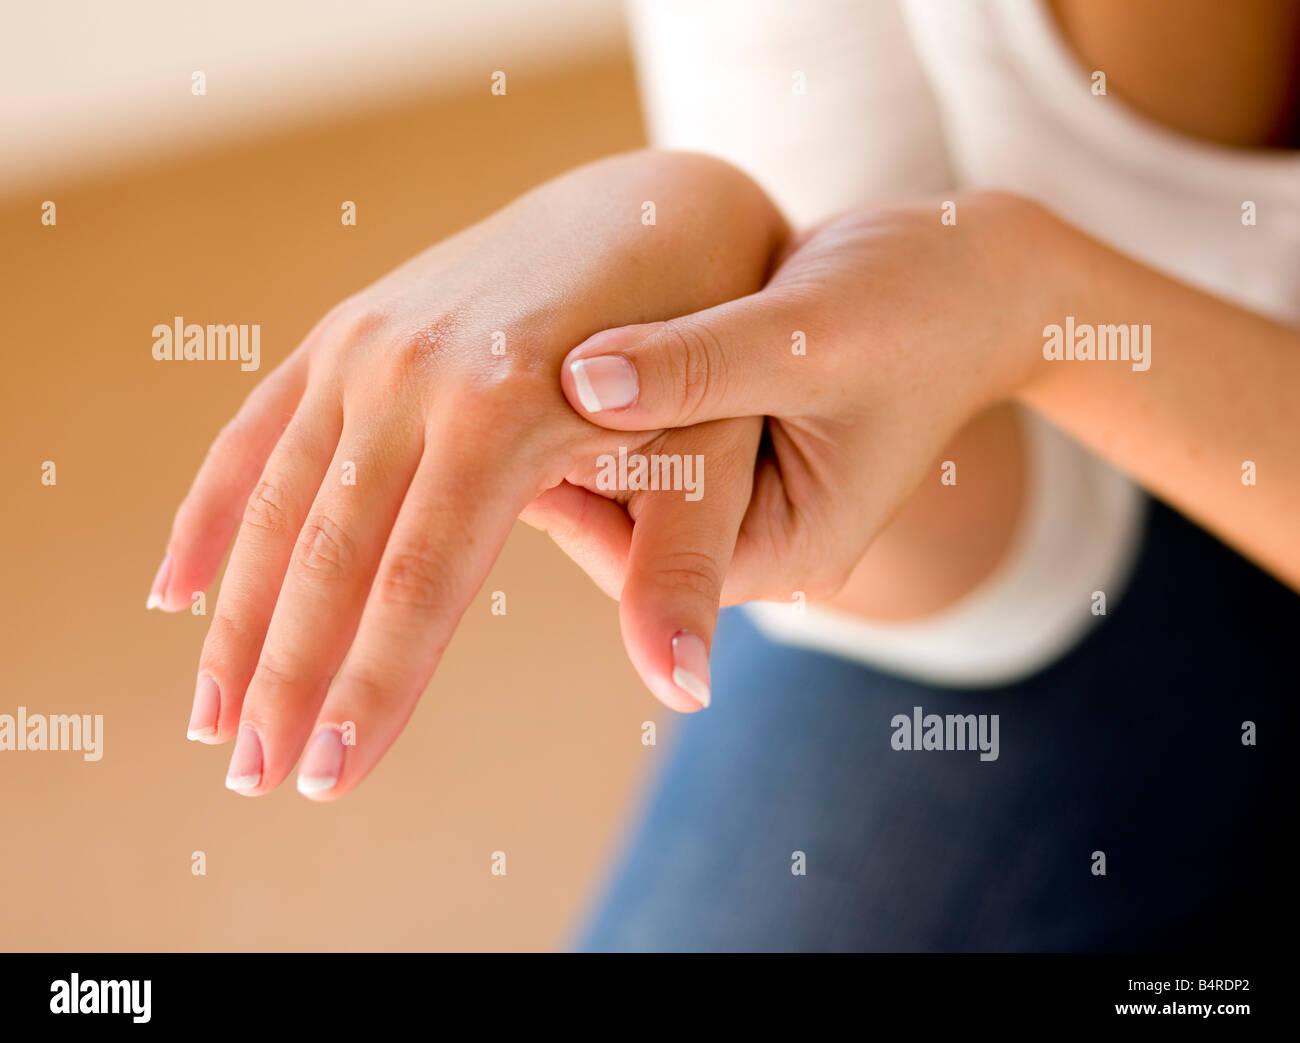 Woman massaging hands - Stock Image